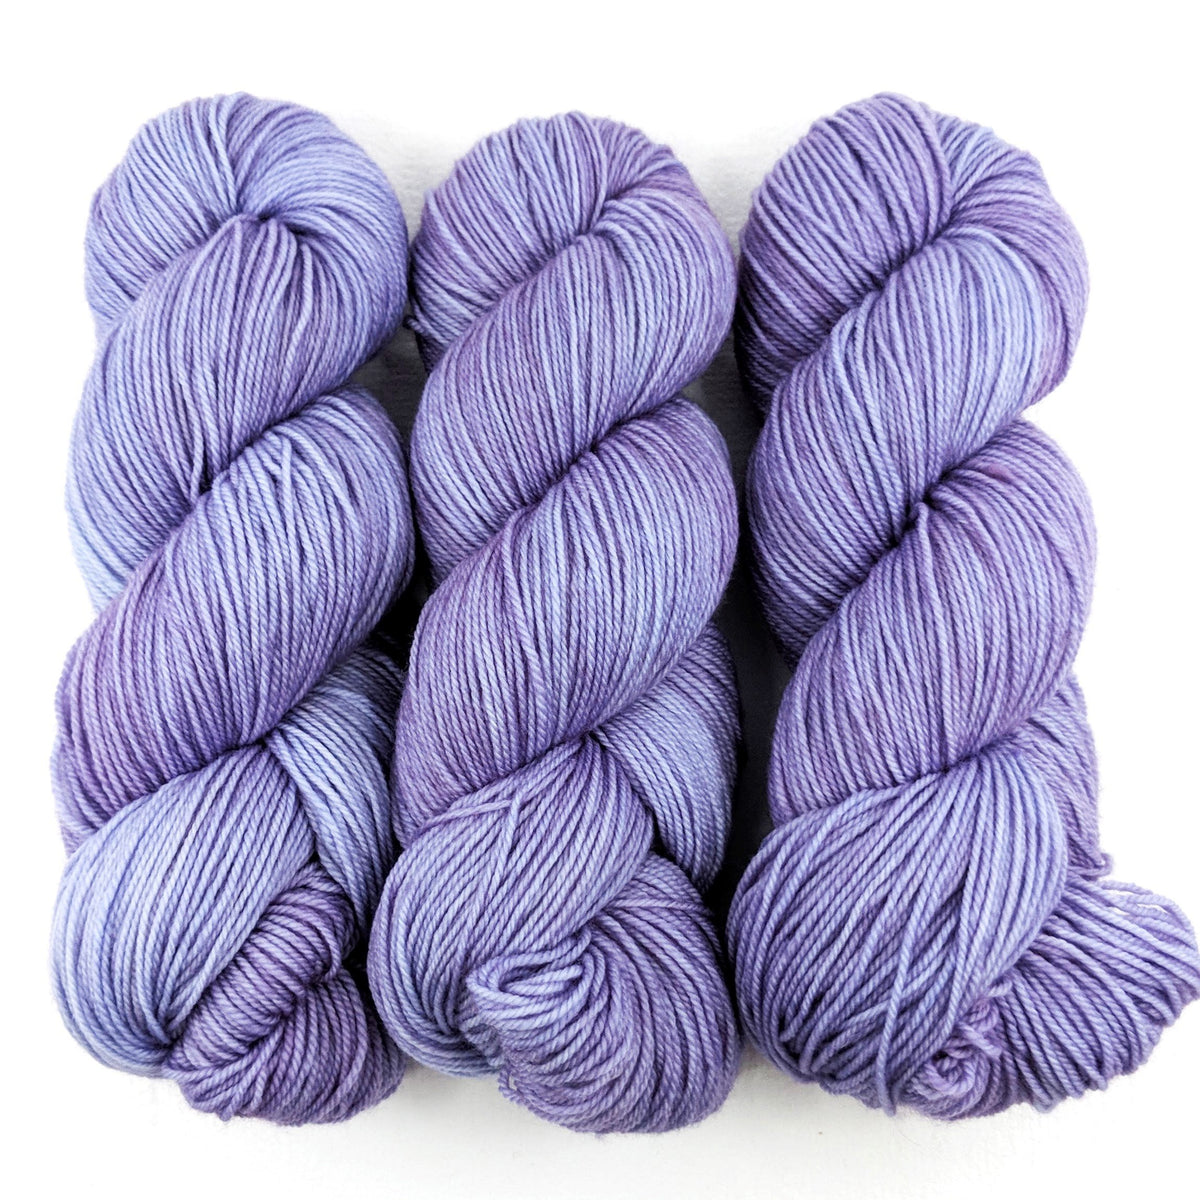 English Lavender in Worsted Weight